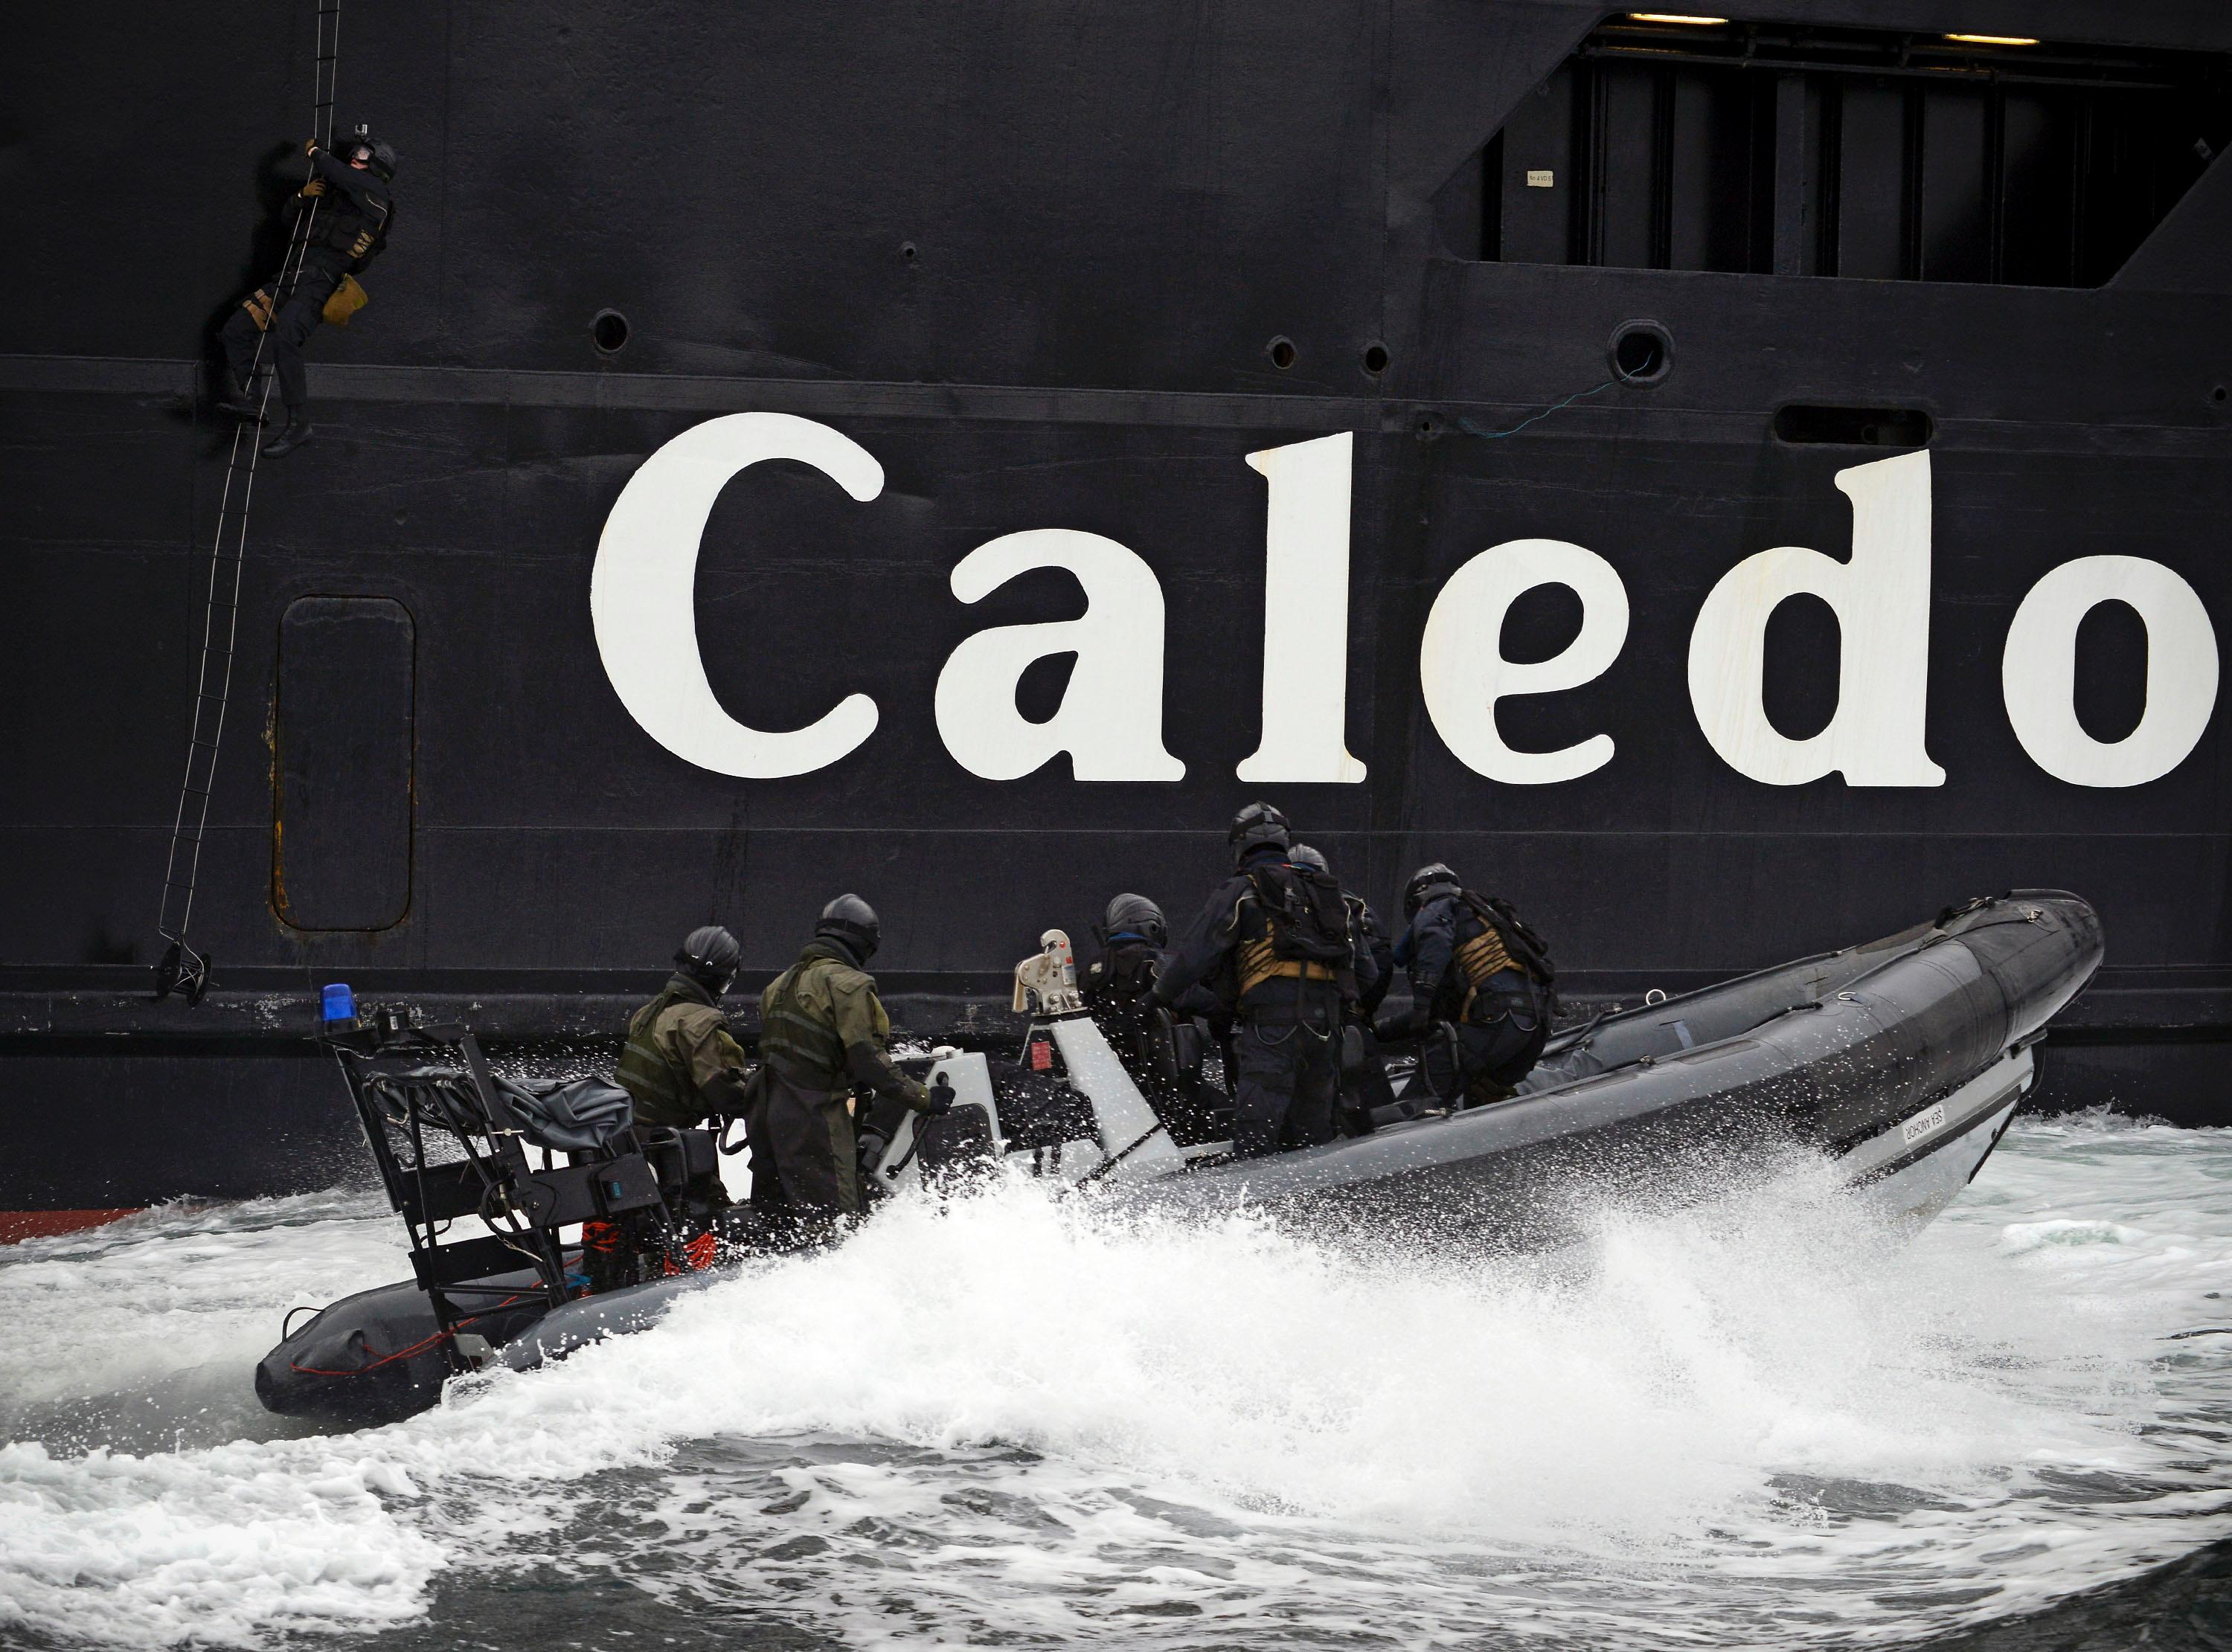 Royal Navy Marines scaling the MV Caledonian Isles